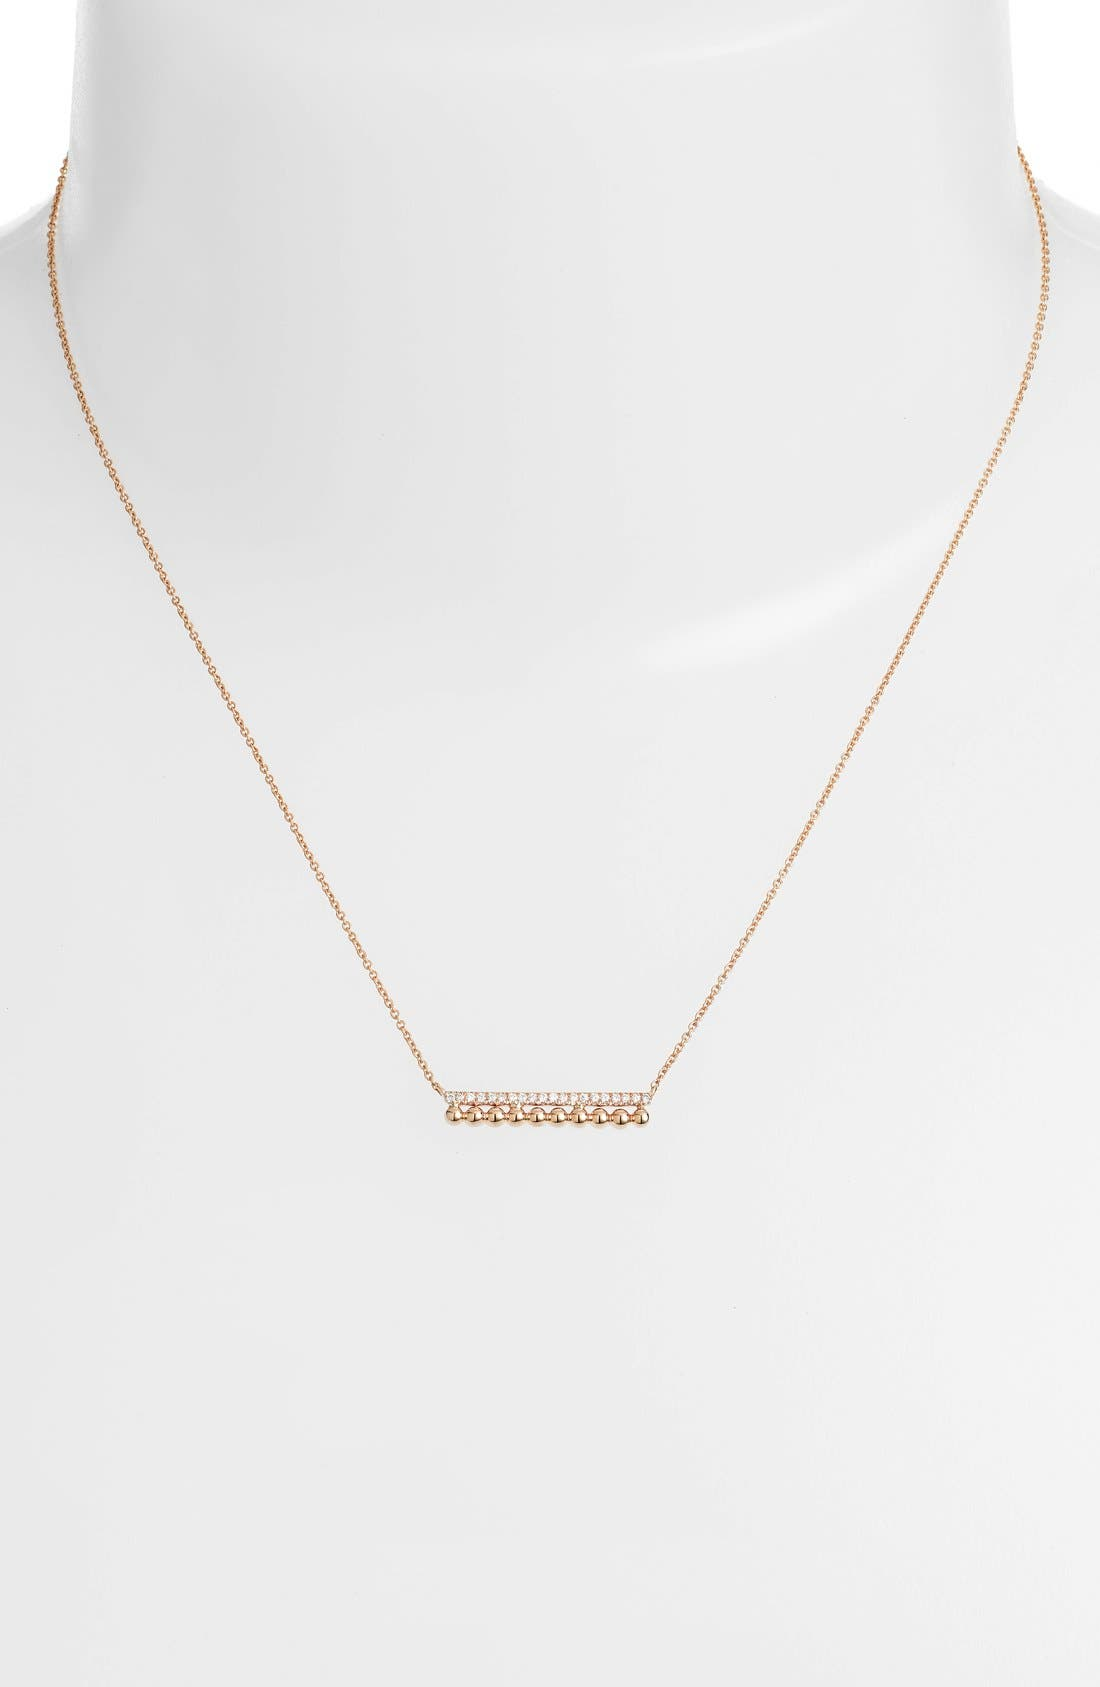 'Poppy Rae' Bar Pendant Necklace,                             Alternate thumbnail 2, color,                             Yellow Gold